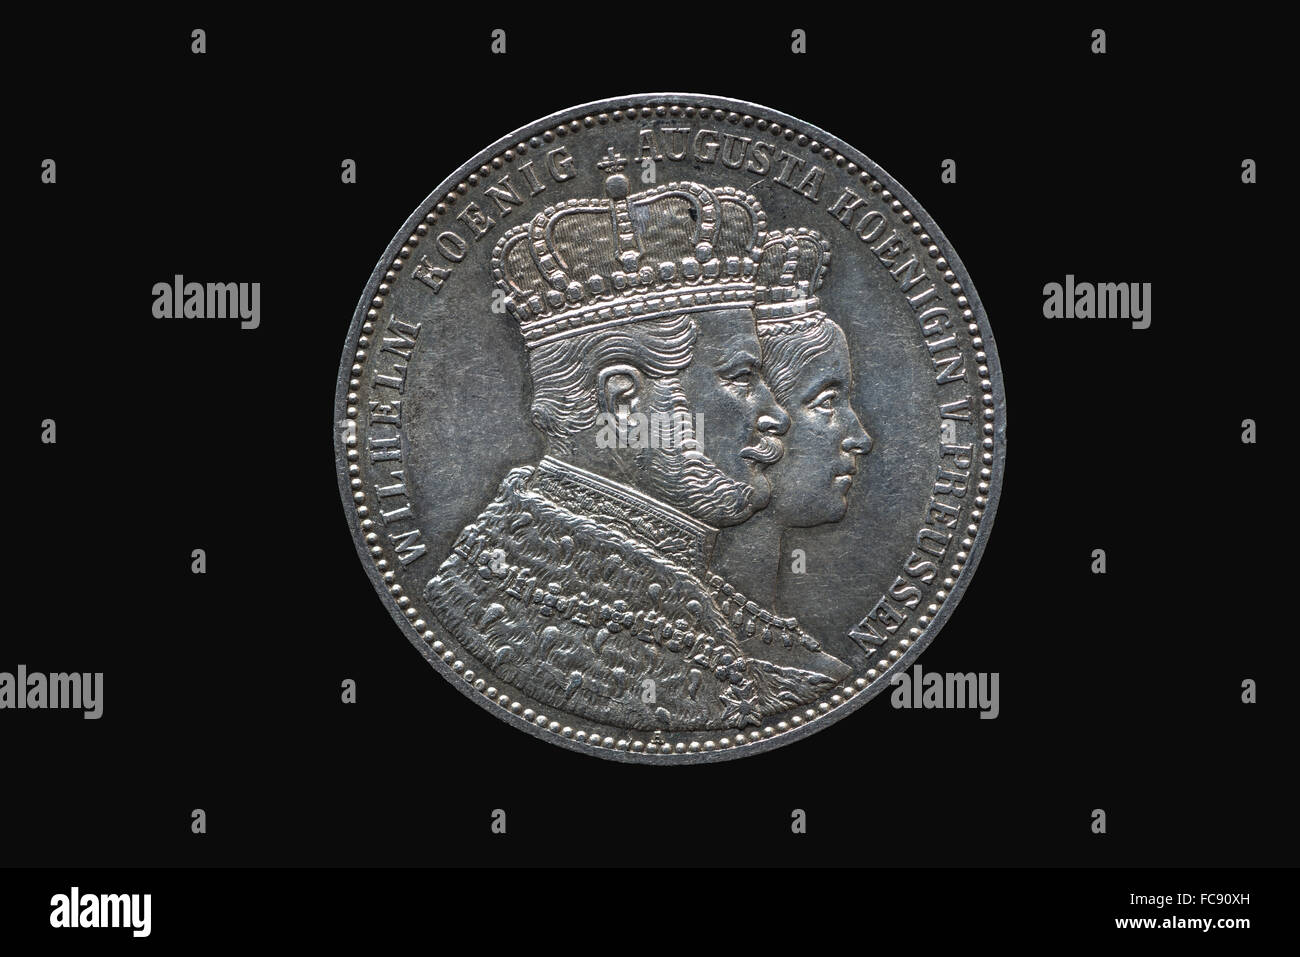 King William of Prussia, Coronation Thaler - Stock Image